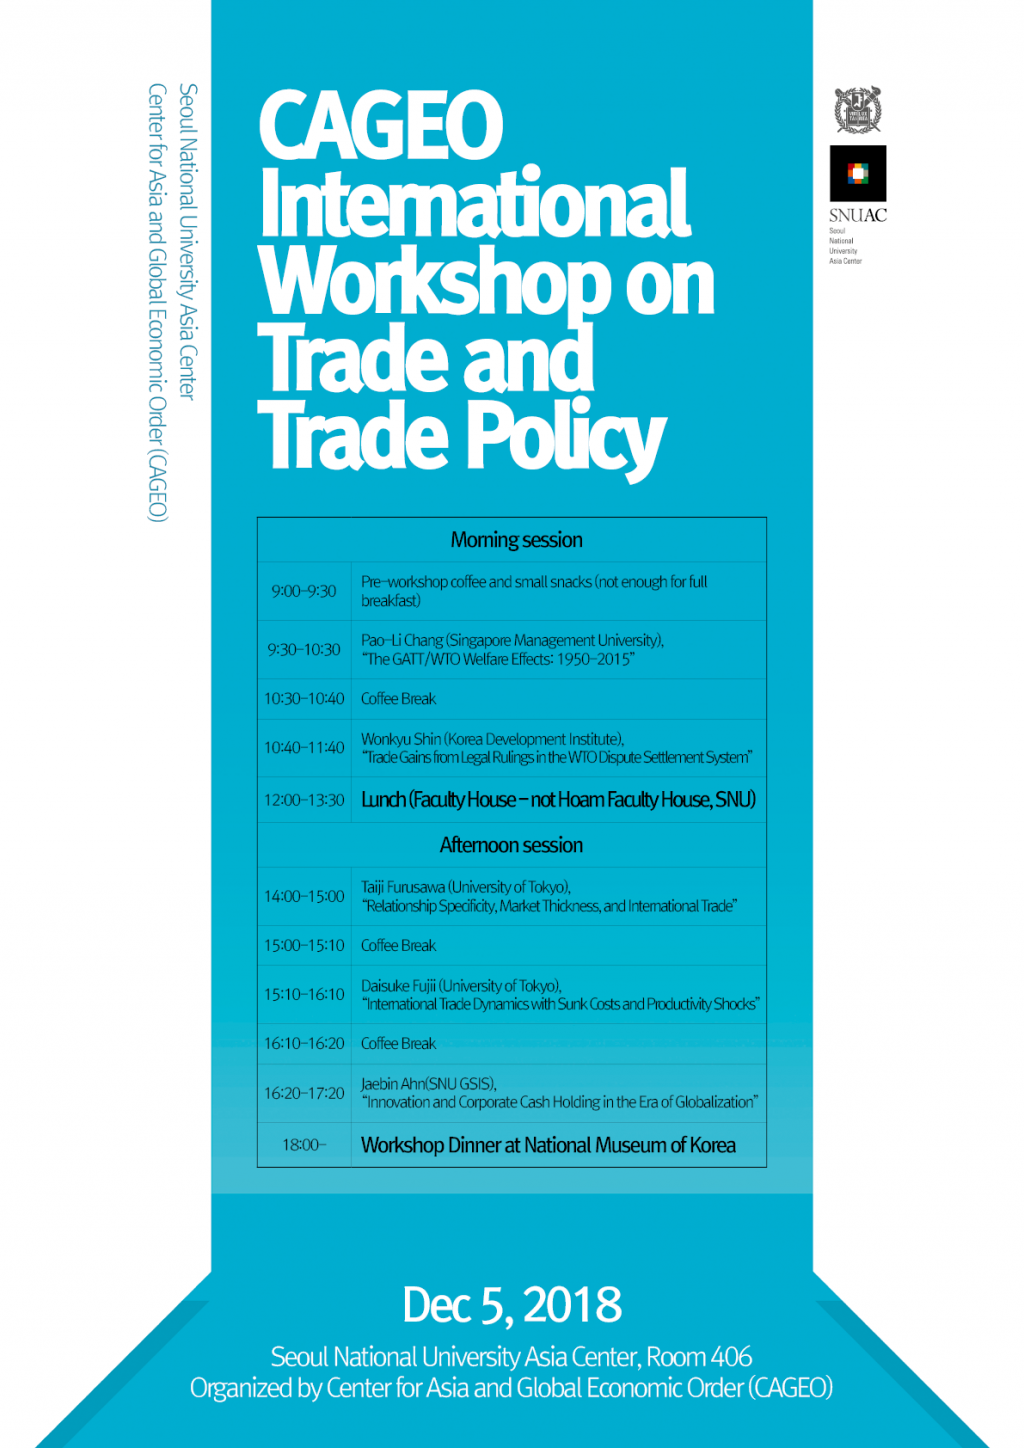 CAGEO International Workshop on Trade and Trade Policy